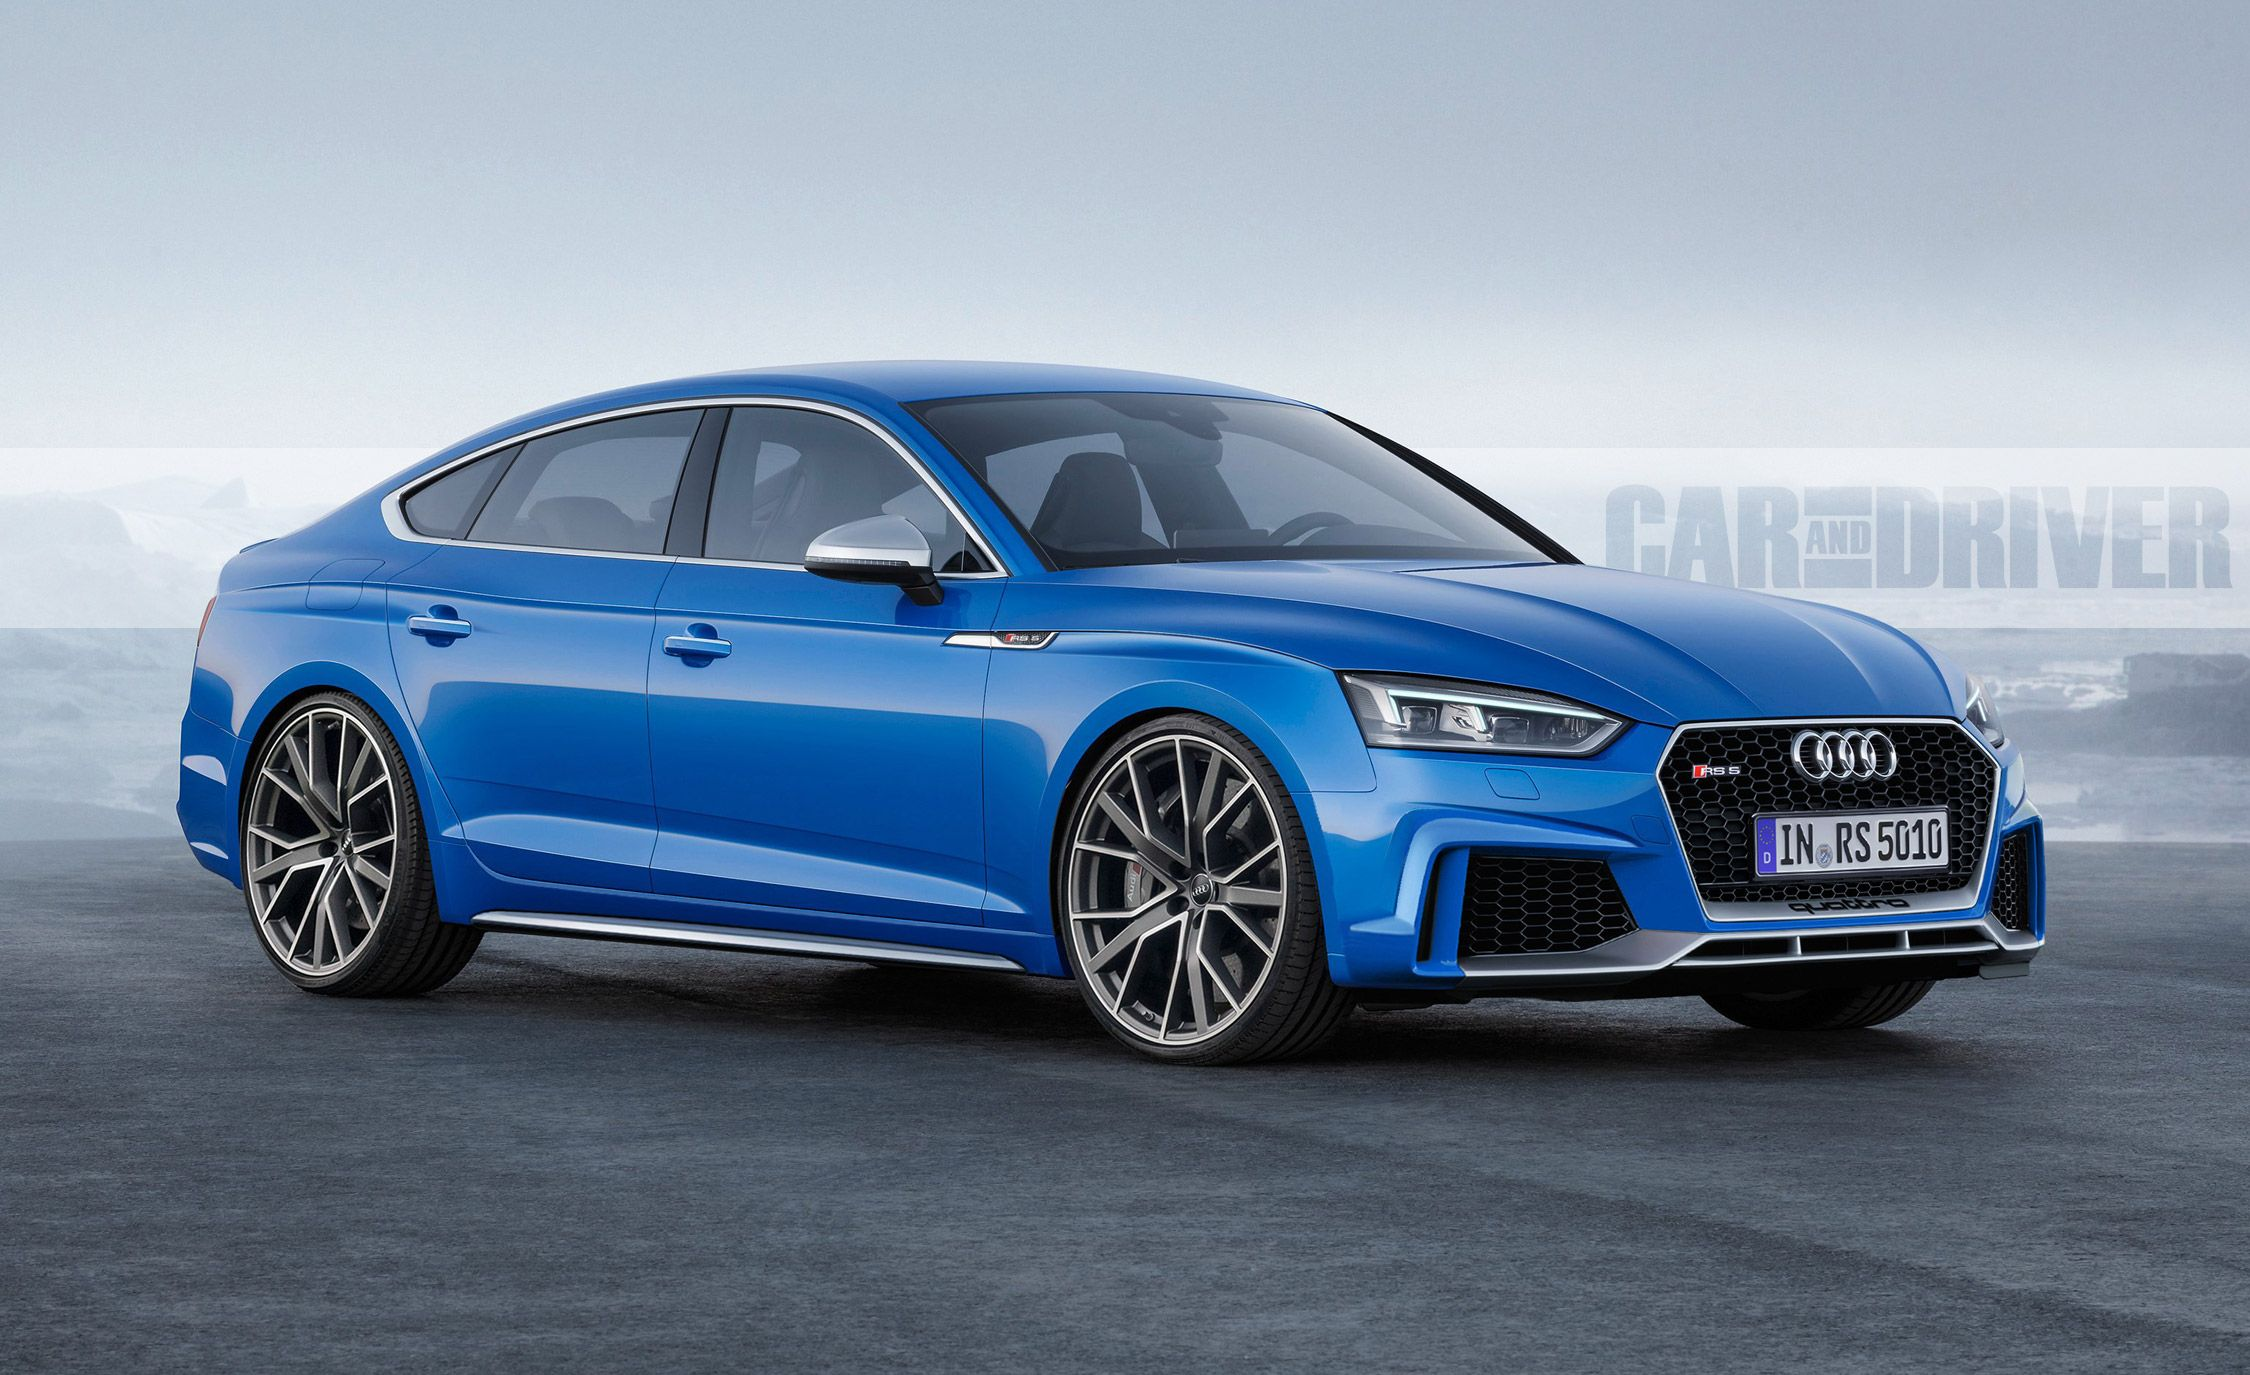 Land Rover Car Wallpaper The 2018 Audi Rs5 Is A Car Worth Waiting For Feature